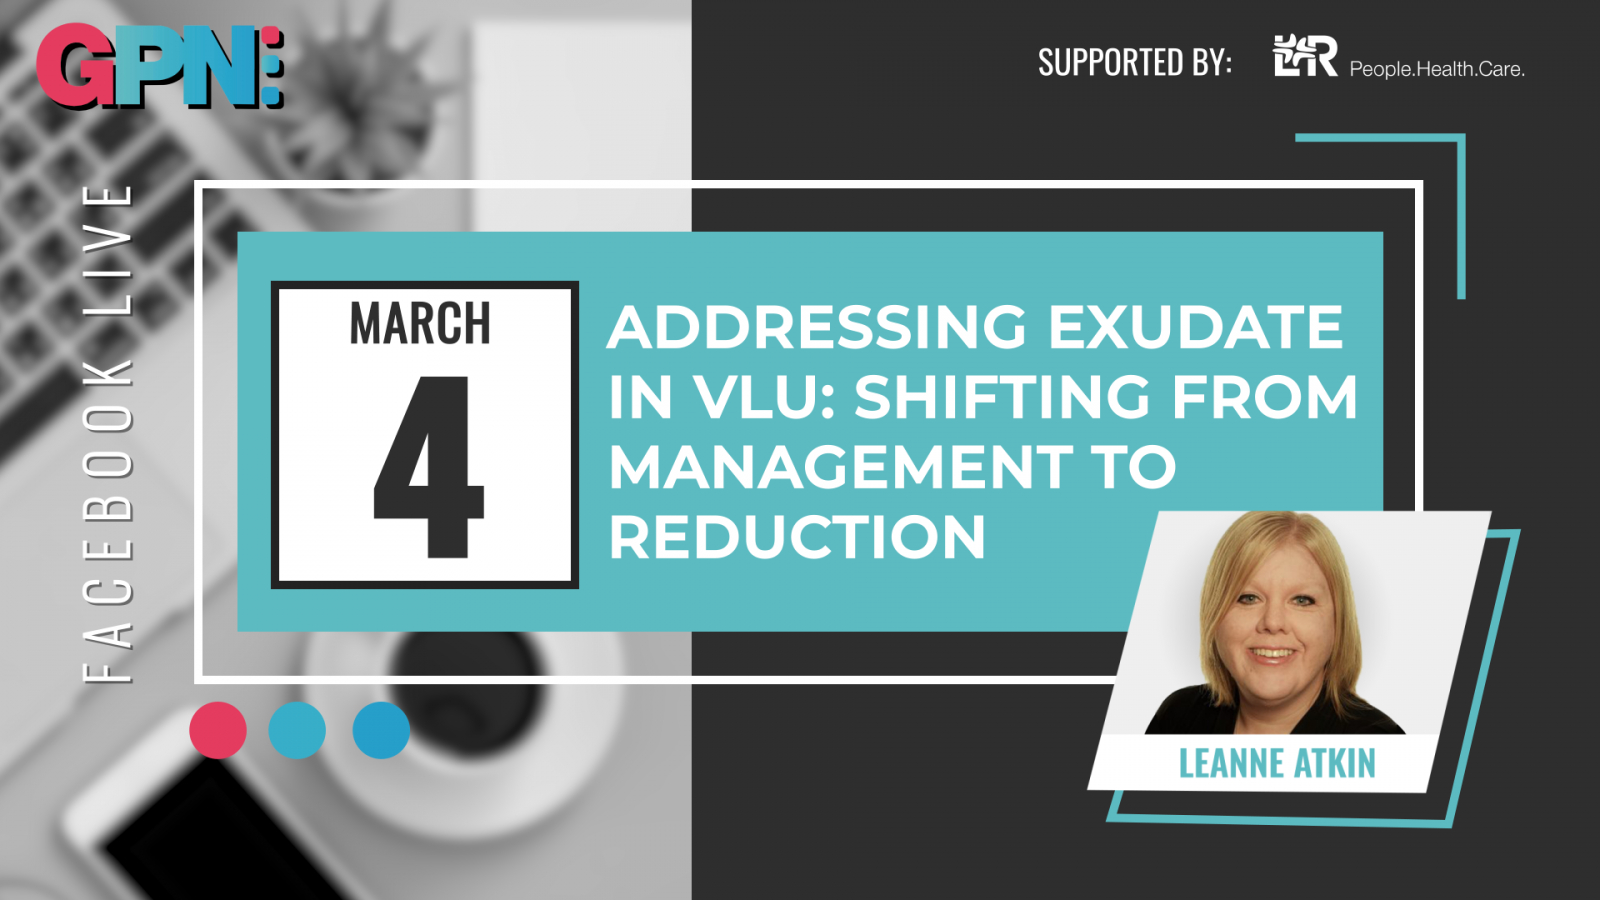 Addressing exudate in VLU: shifting from management to reduction